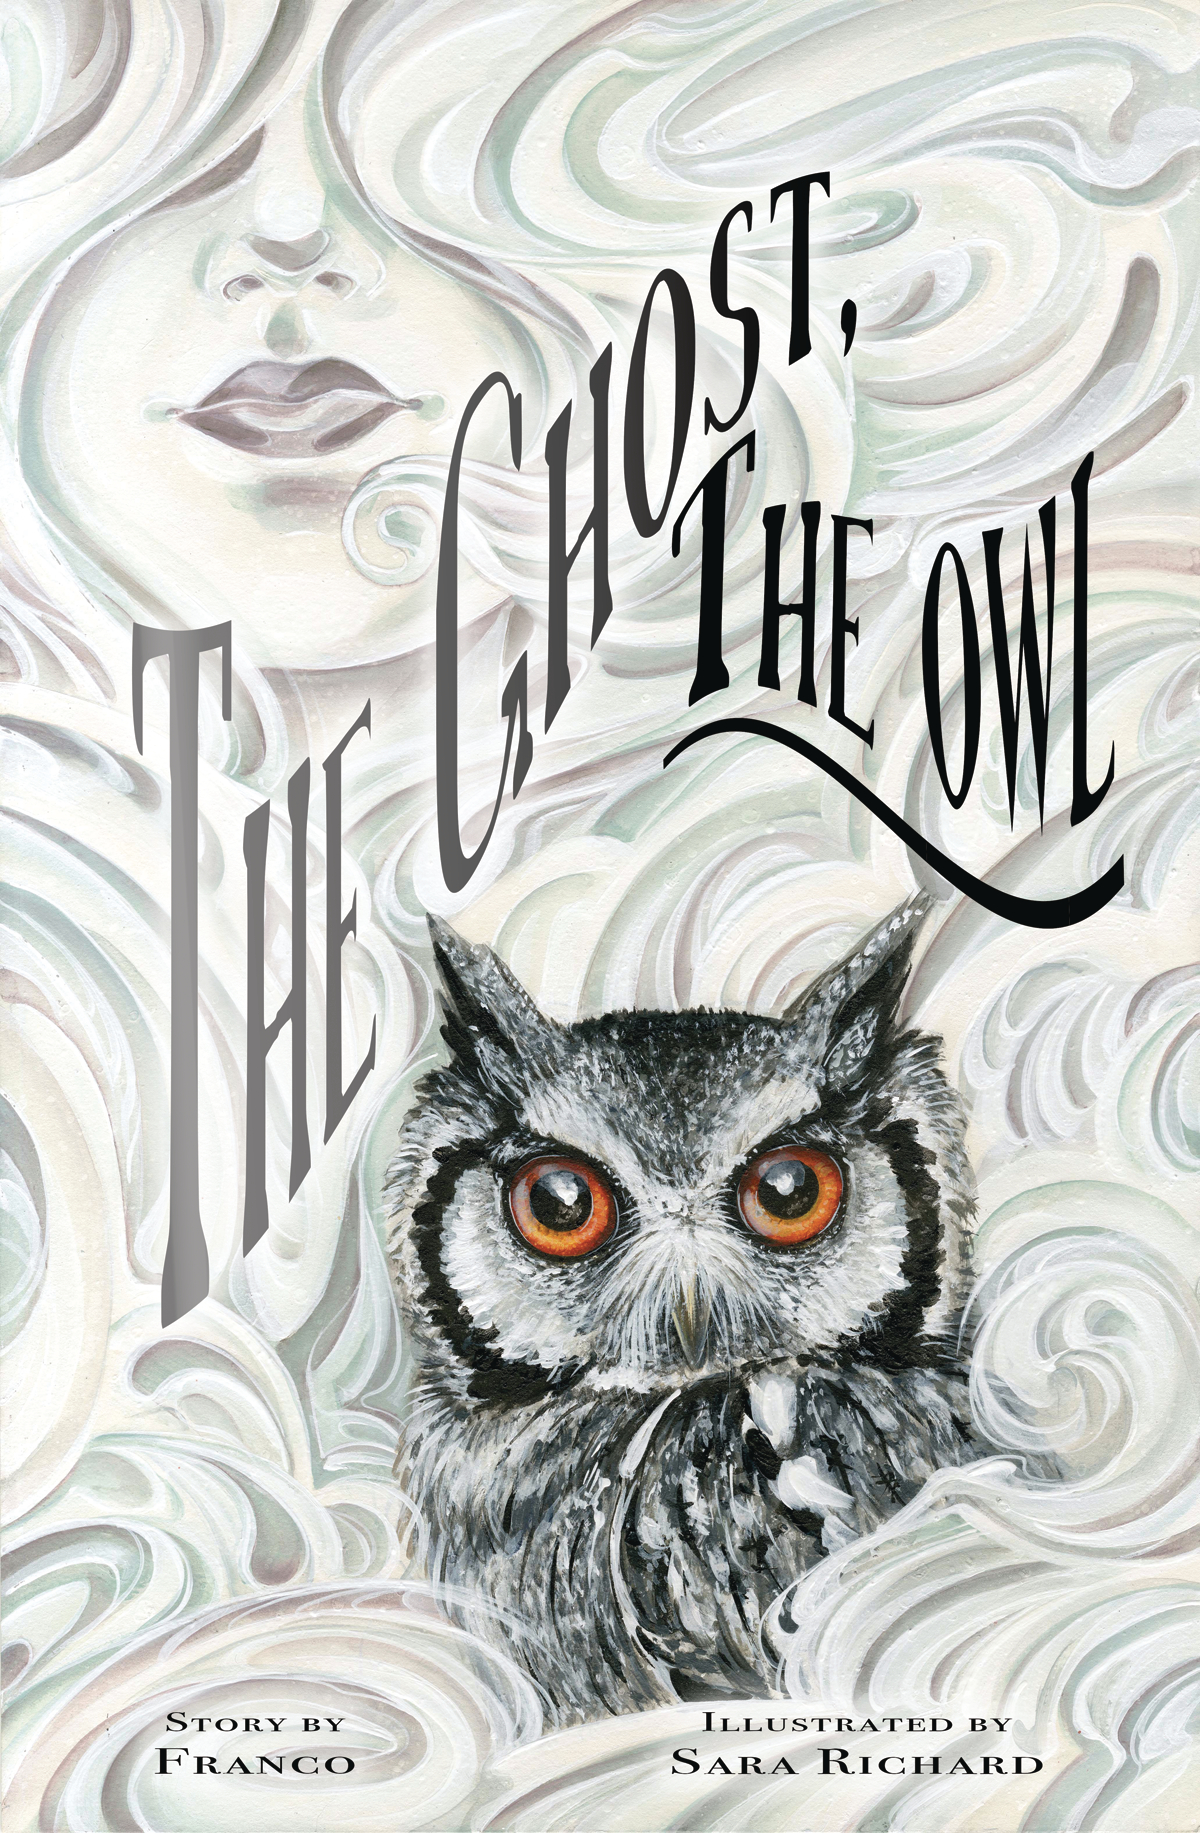 THE GHOST THE OWL HC